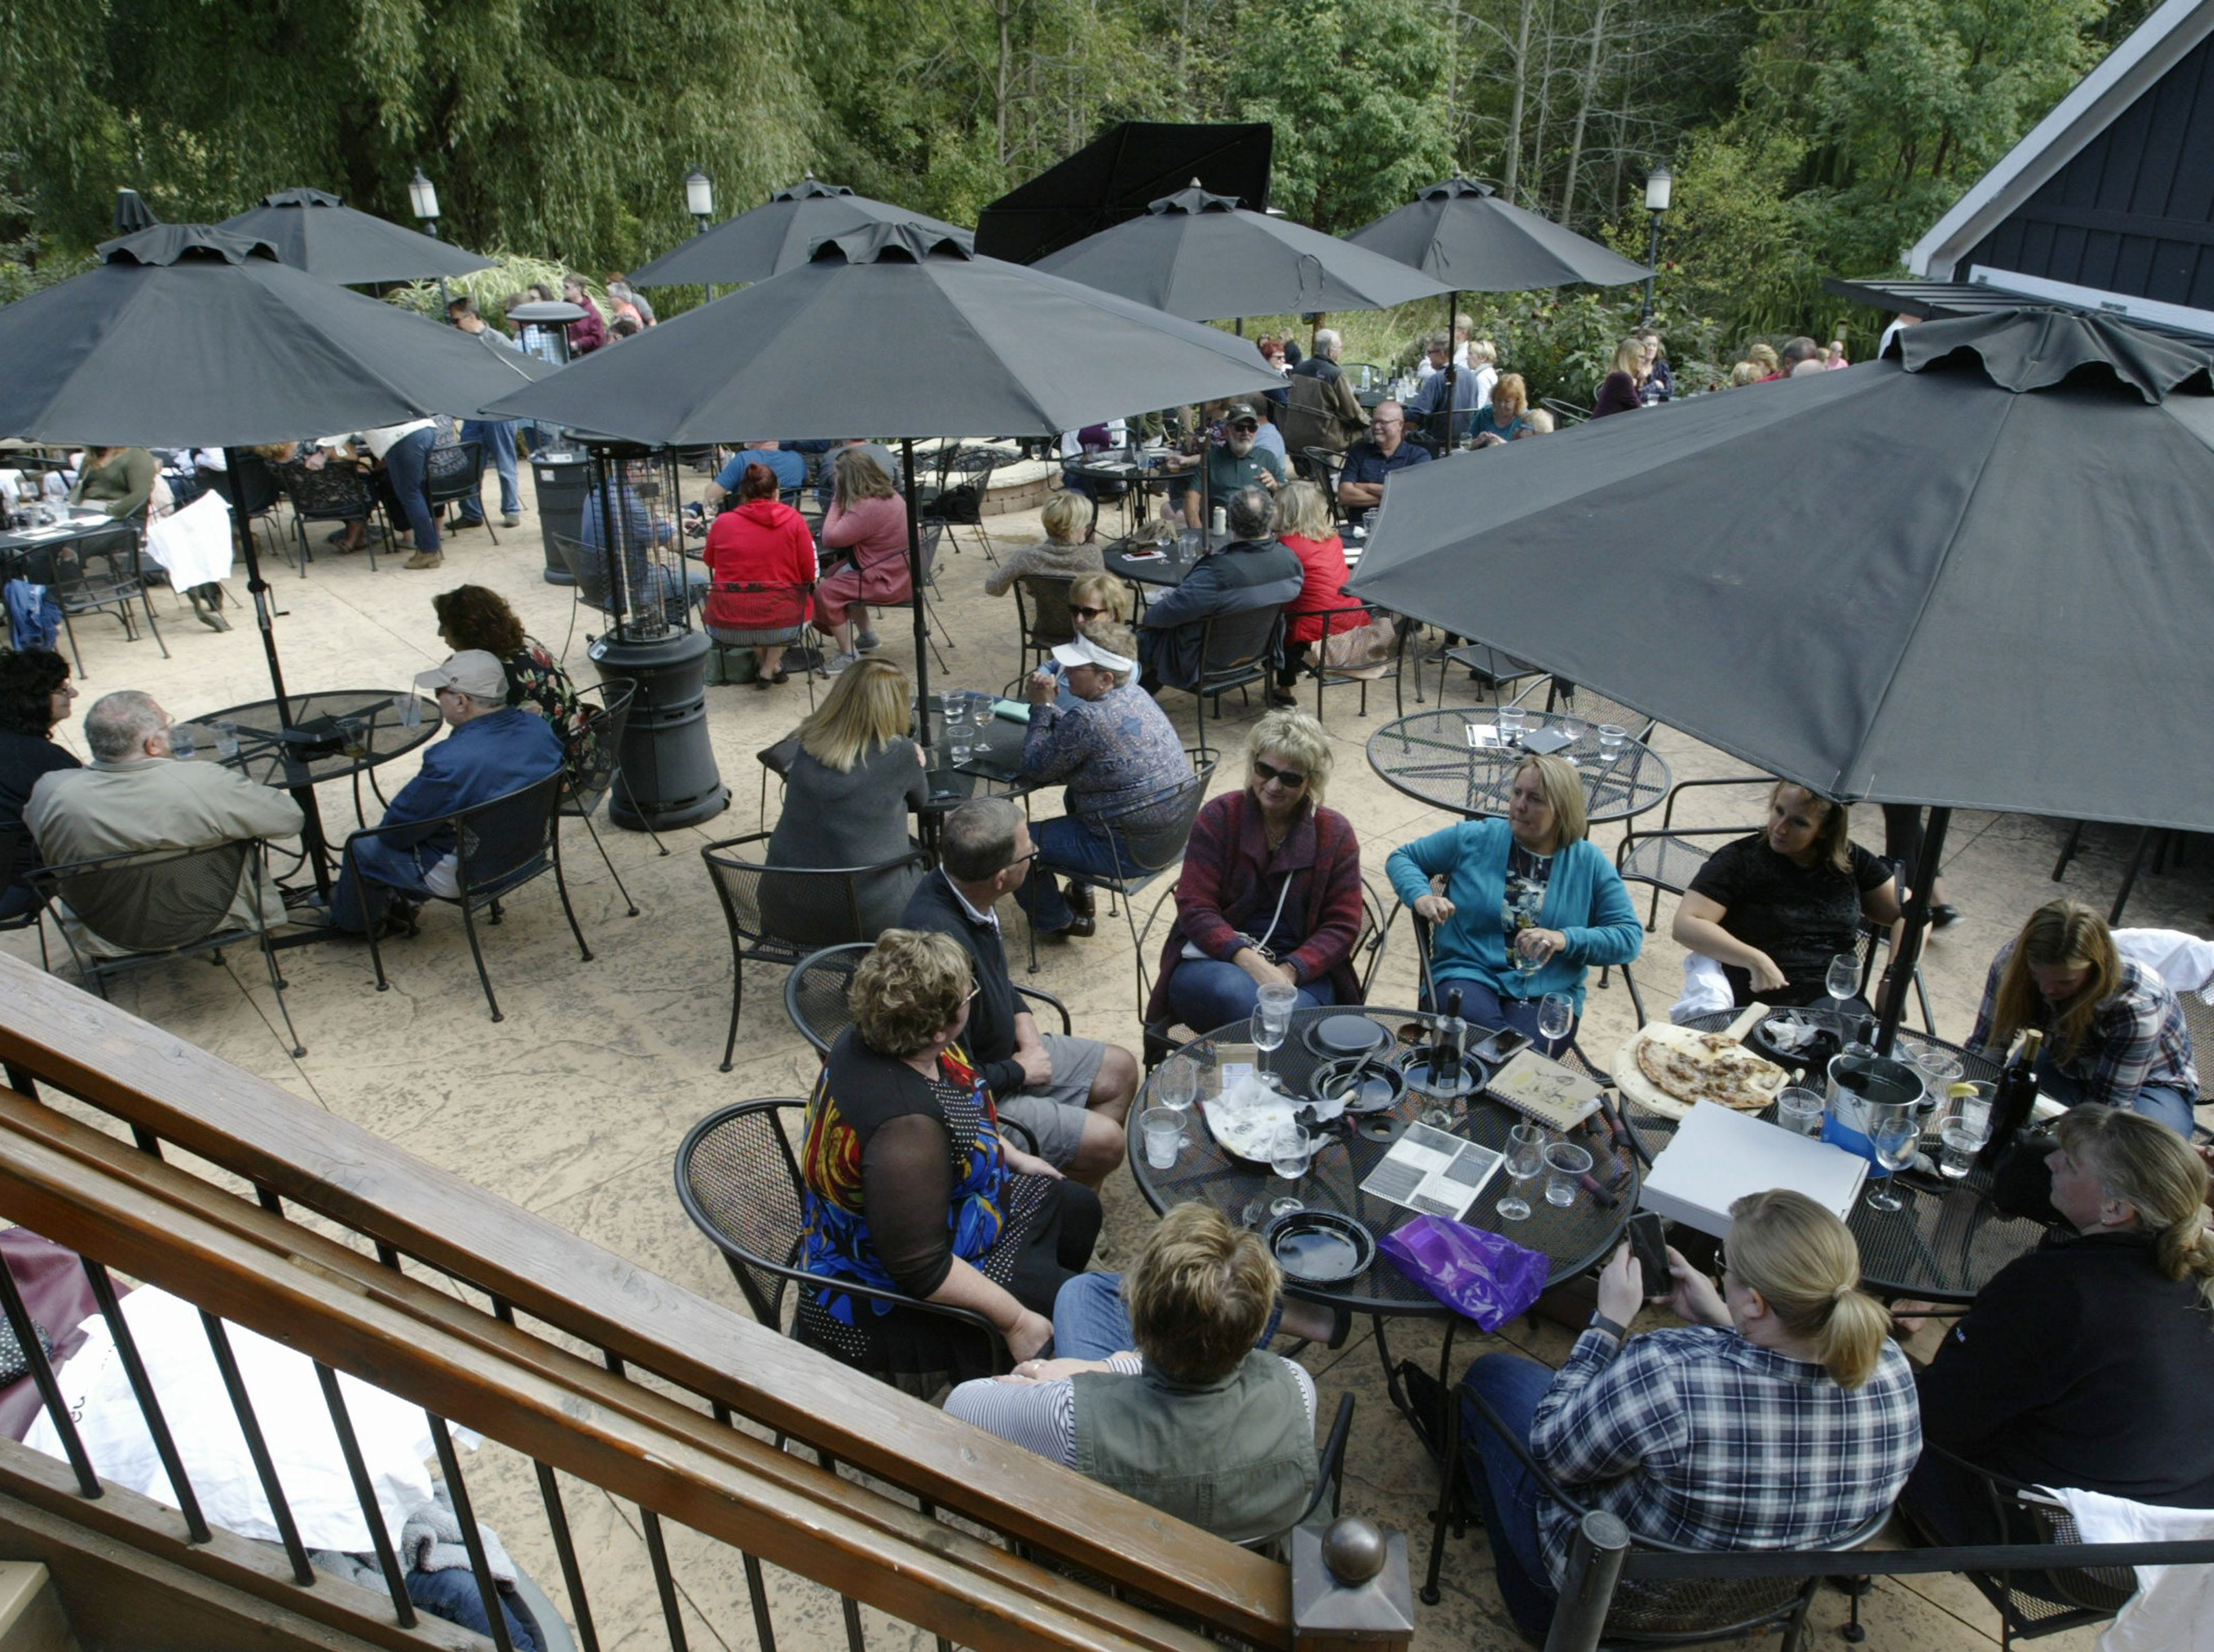 An overall of people enjoying themselves at the Harvest Festival & Grape Stomp at The Blind Horse Restaurant and Winery, Saturday, September 22, 2018, in Kohler, Wis.